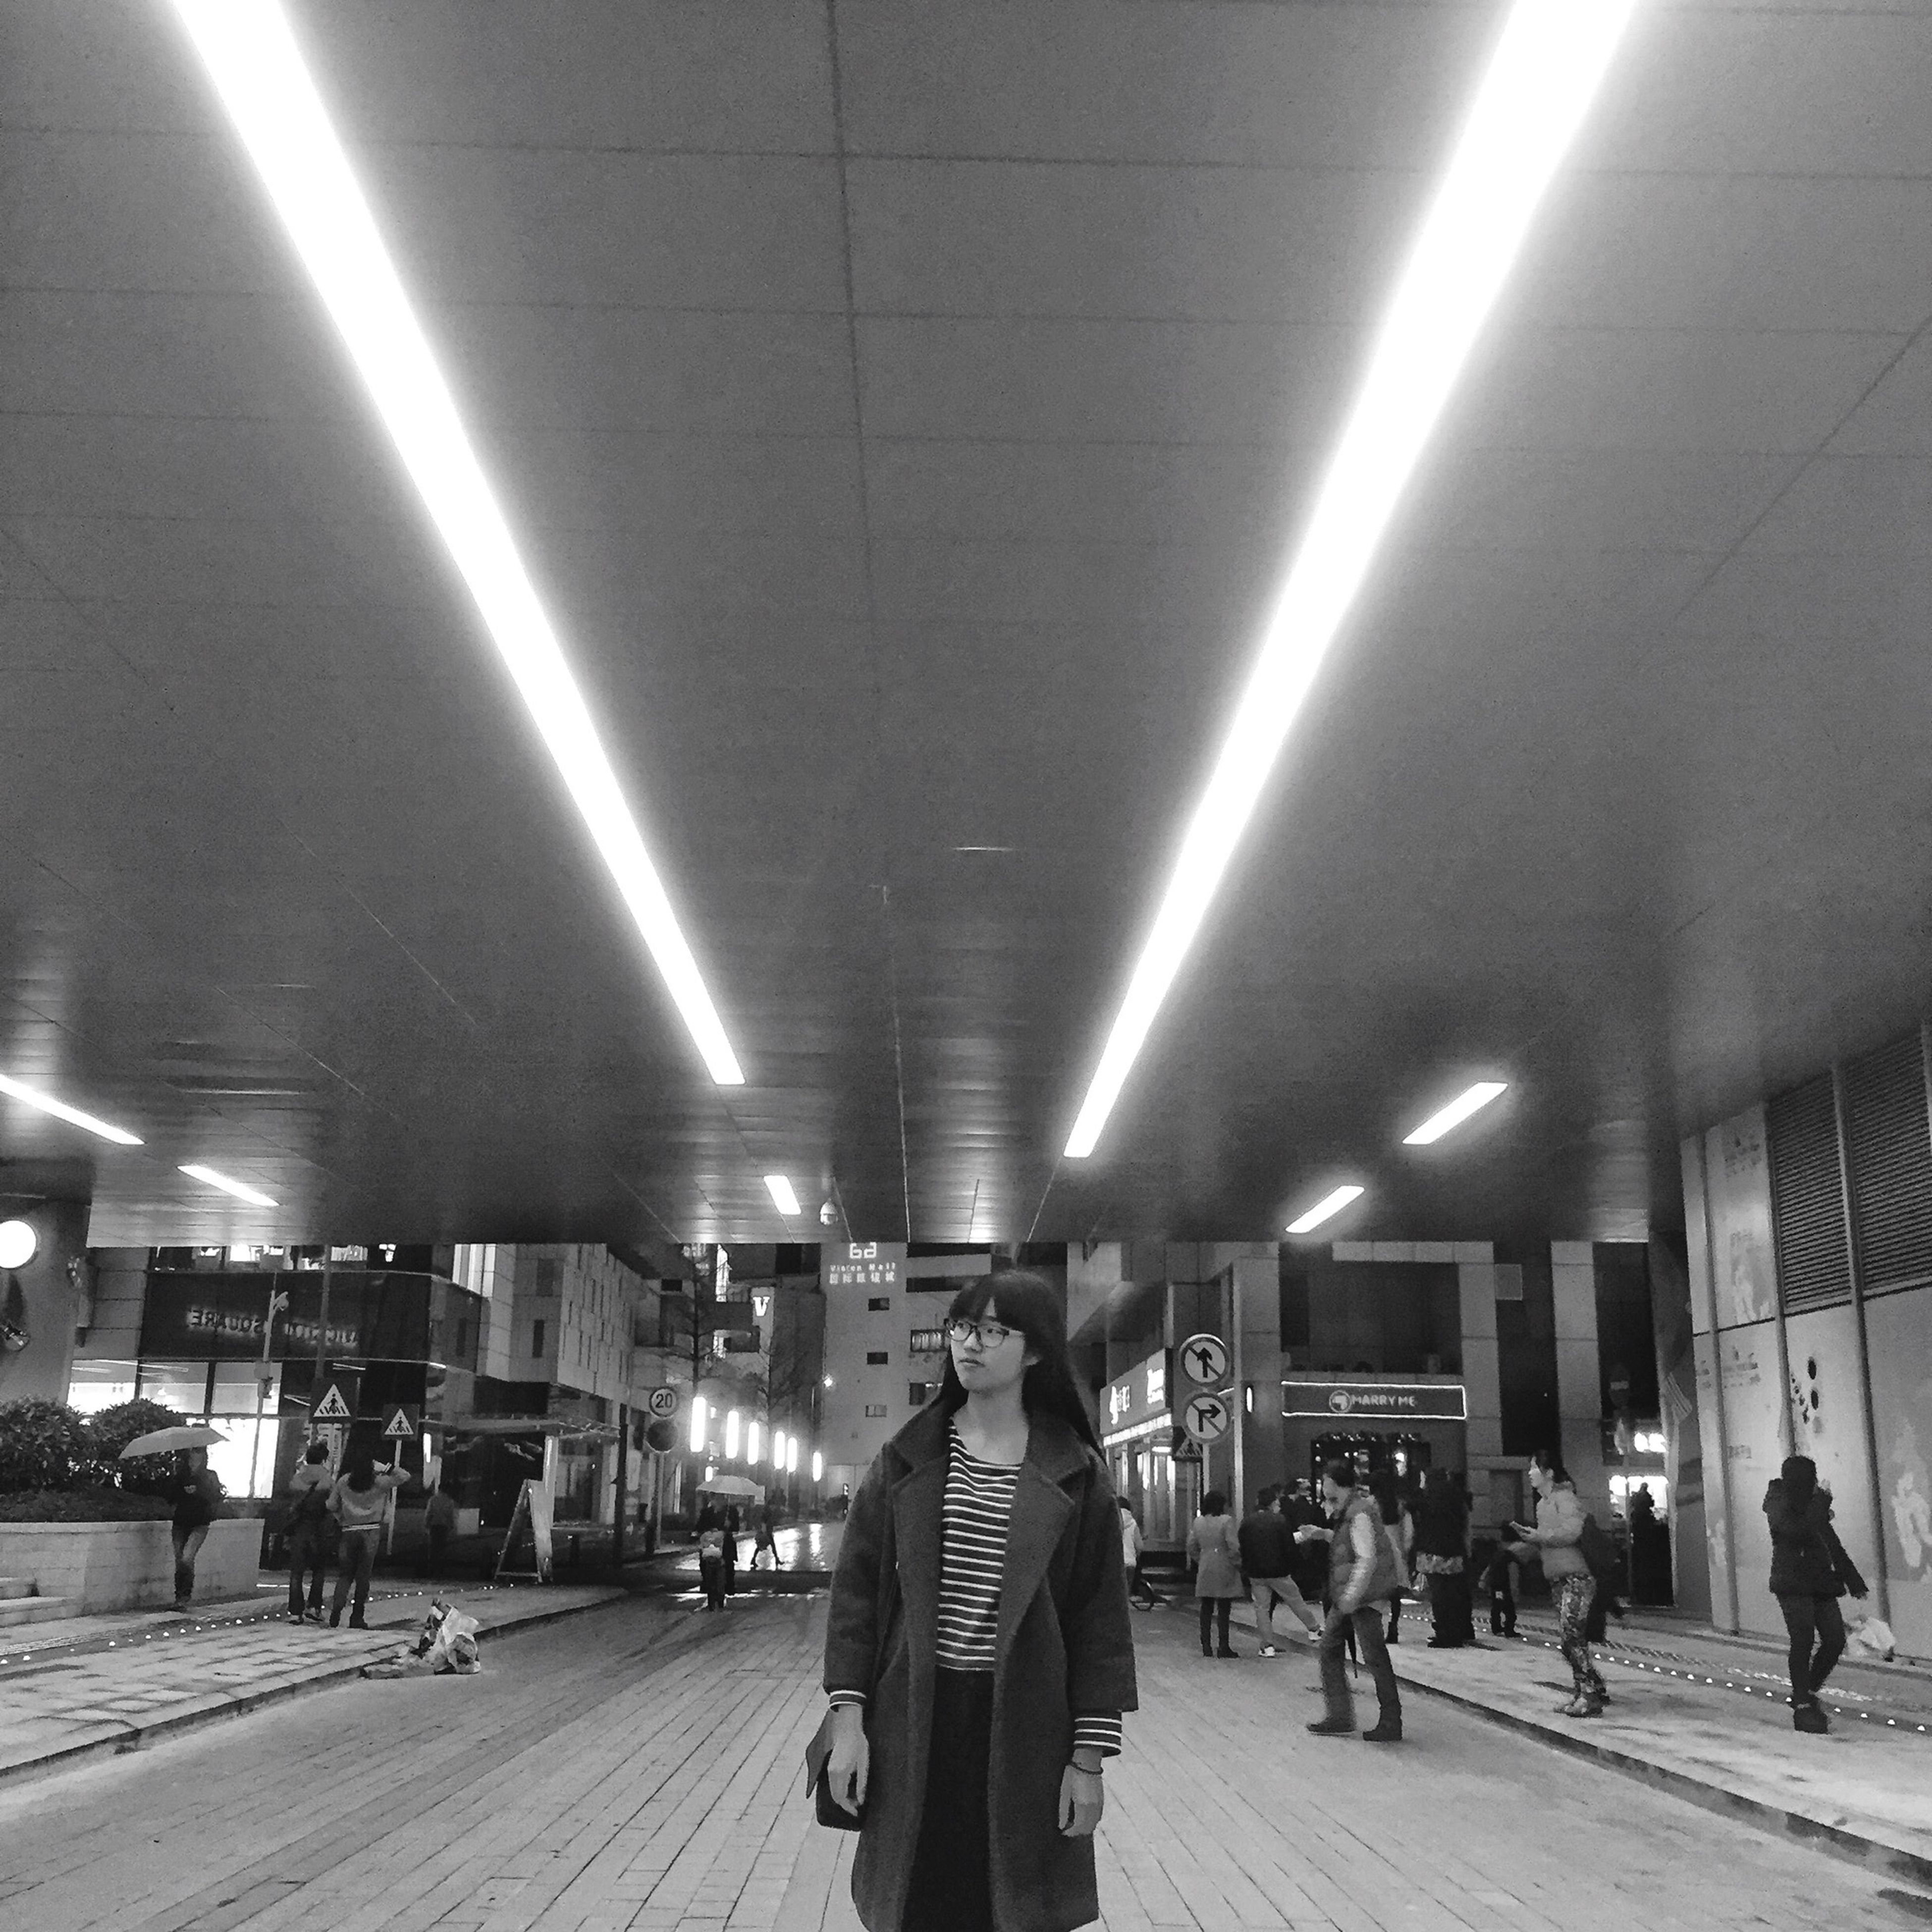 lifestyles, men, illuminated, person, large group of people, walking, leisure activity, architecture, built structure, city life, indoors, transportation, city, full length, ceiling, street, lighting equipment, night, railroad station